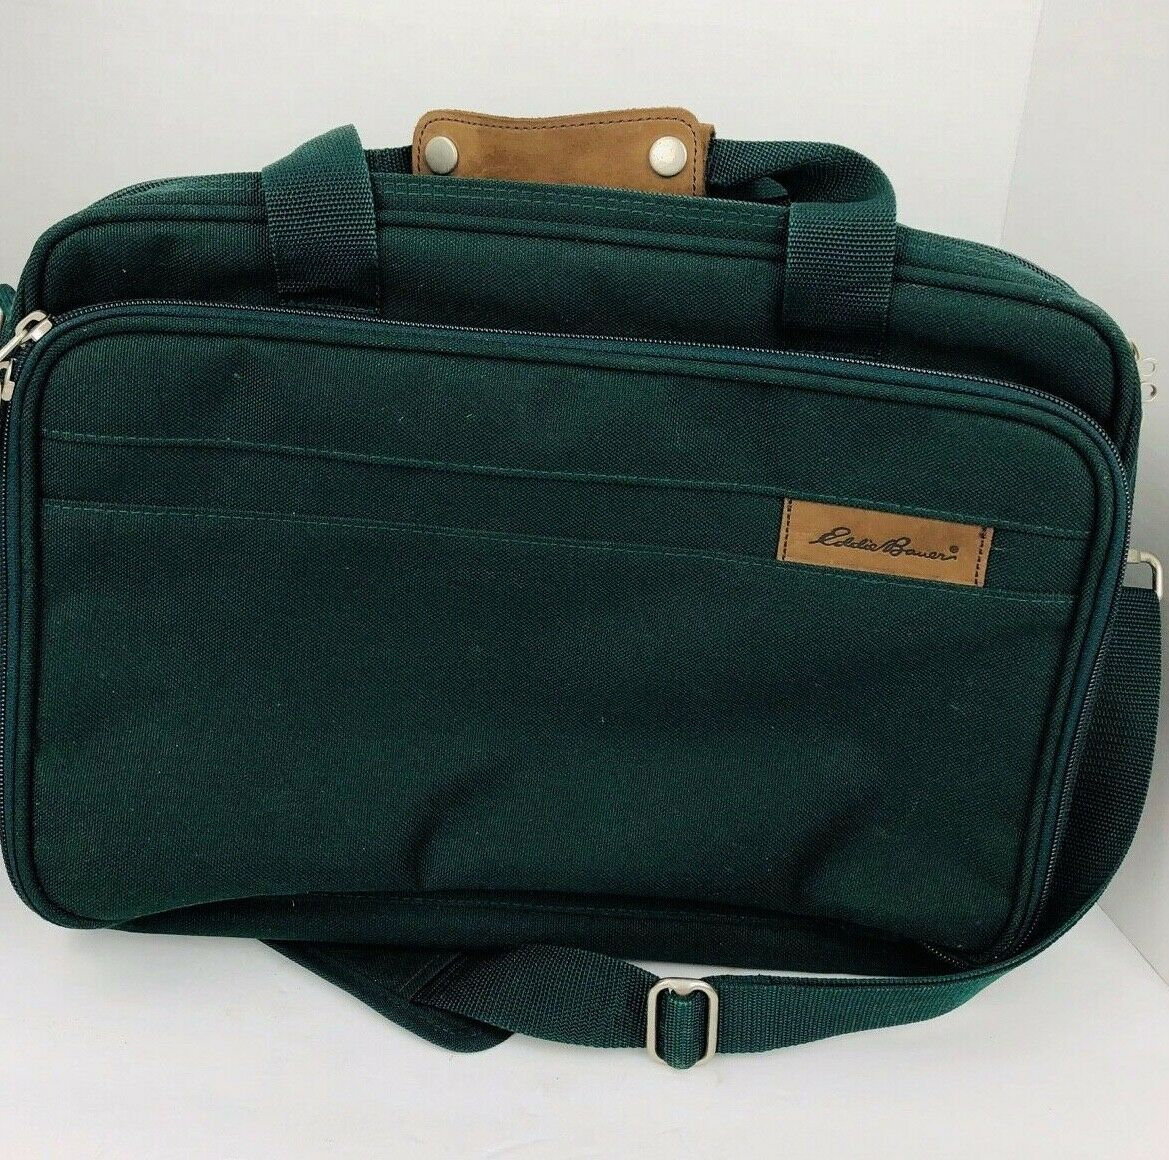 Primary image for Eddie Bauer Messenger Bag Green Travel Tote Briefcase Gym Weekender Computer